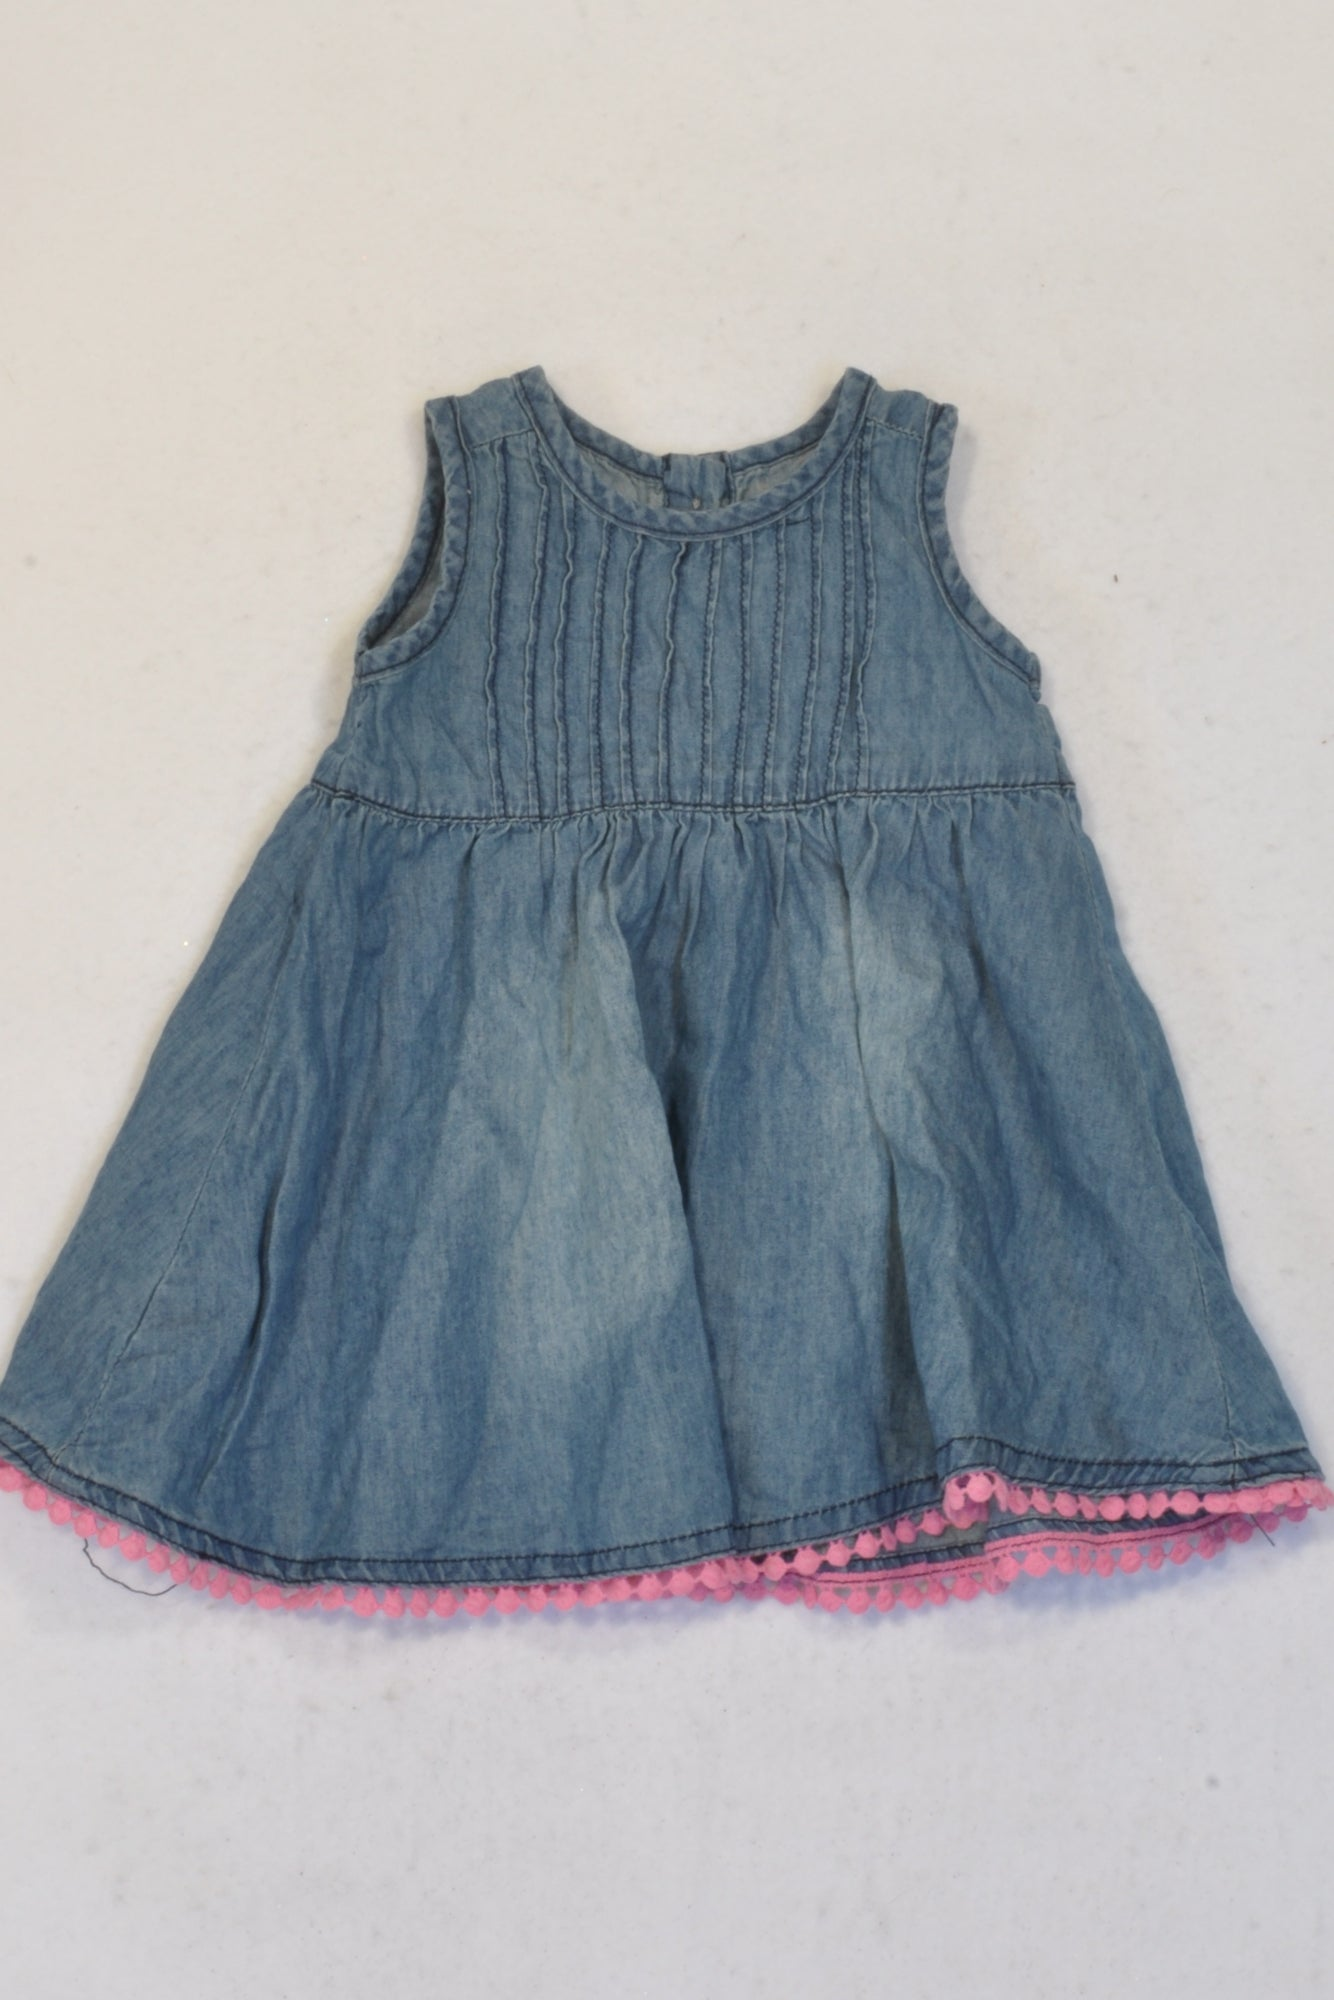 Woolworths Denim Pink Bobble Trim Dress Girls 3-6 months